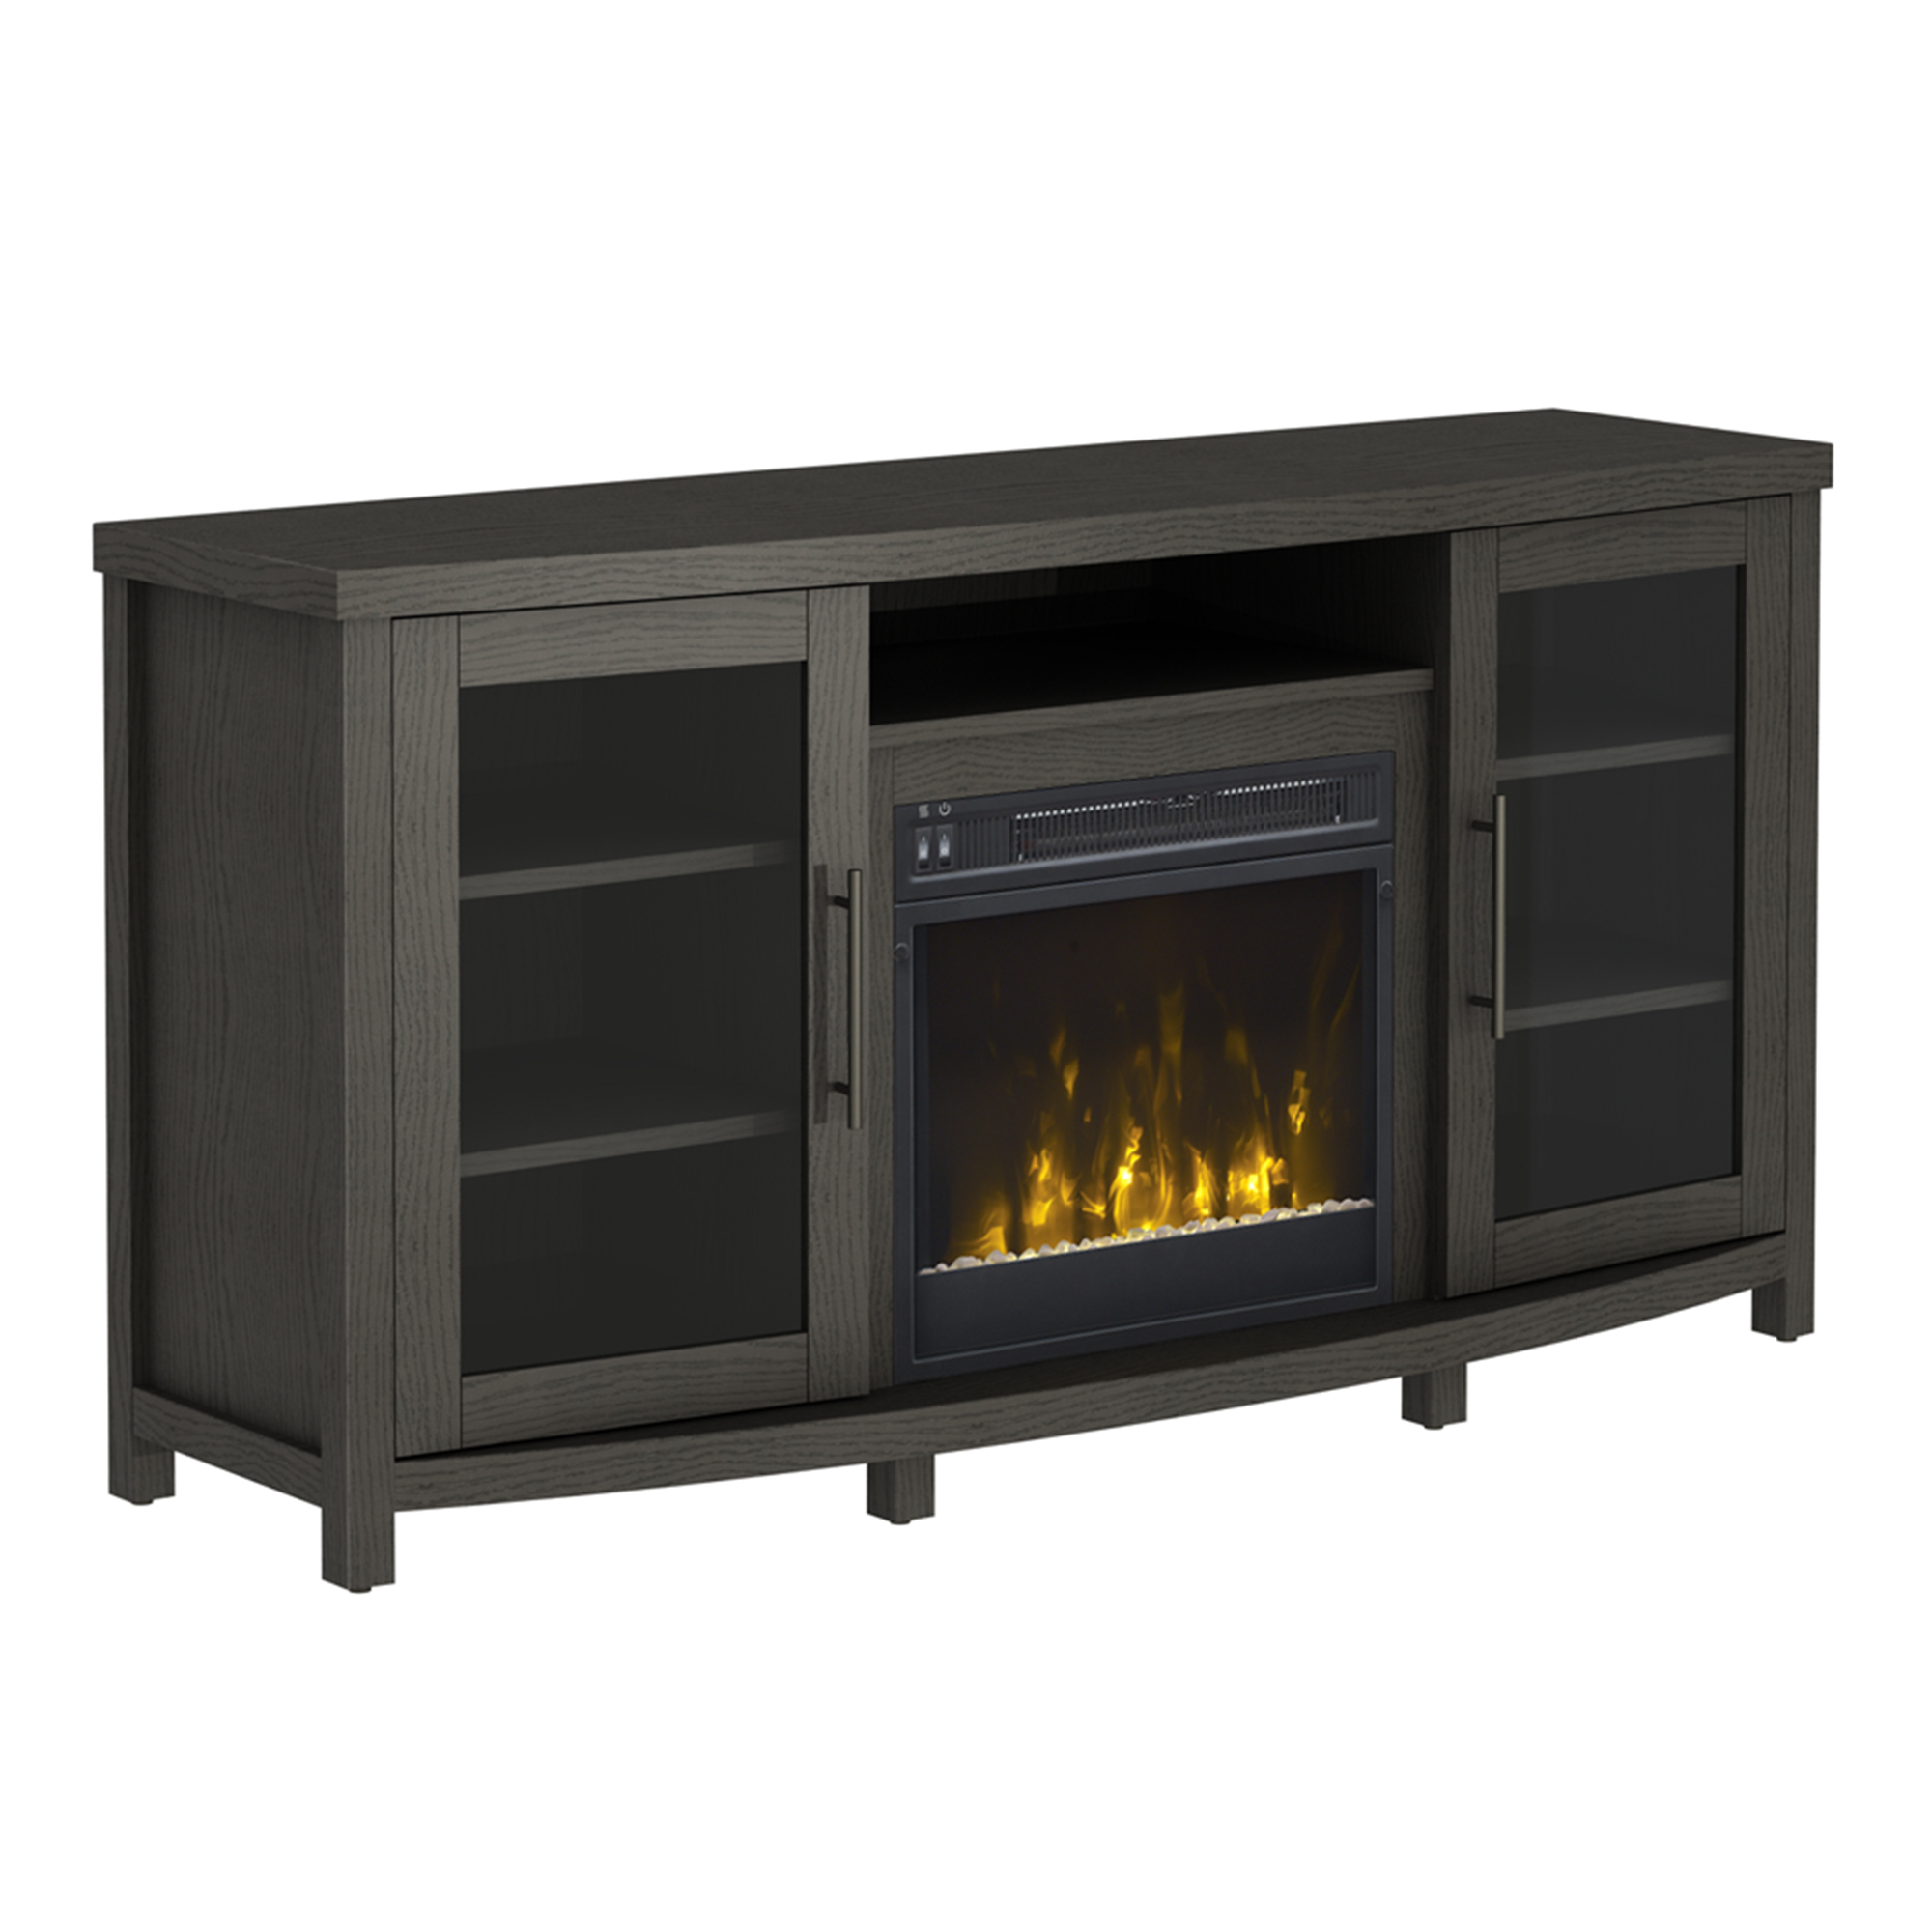 """Latest Rossville Tv Stand For Tvs Up To 60 With Electric Fireplace In Millen Tv Stands For Tvs Up To 60"""" (View 11 of 25)"""